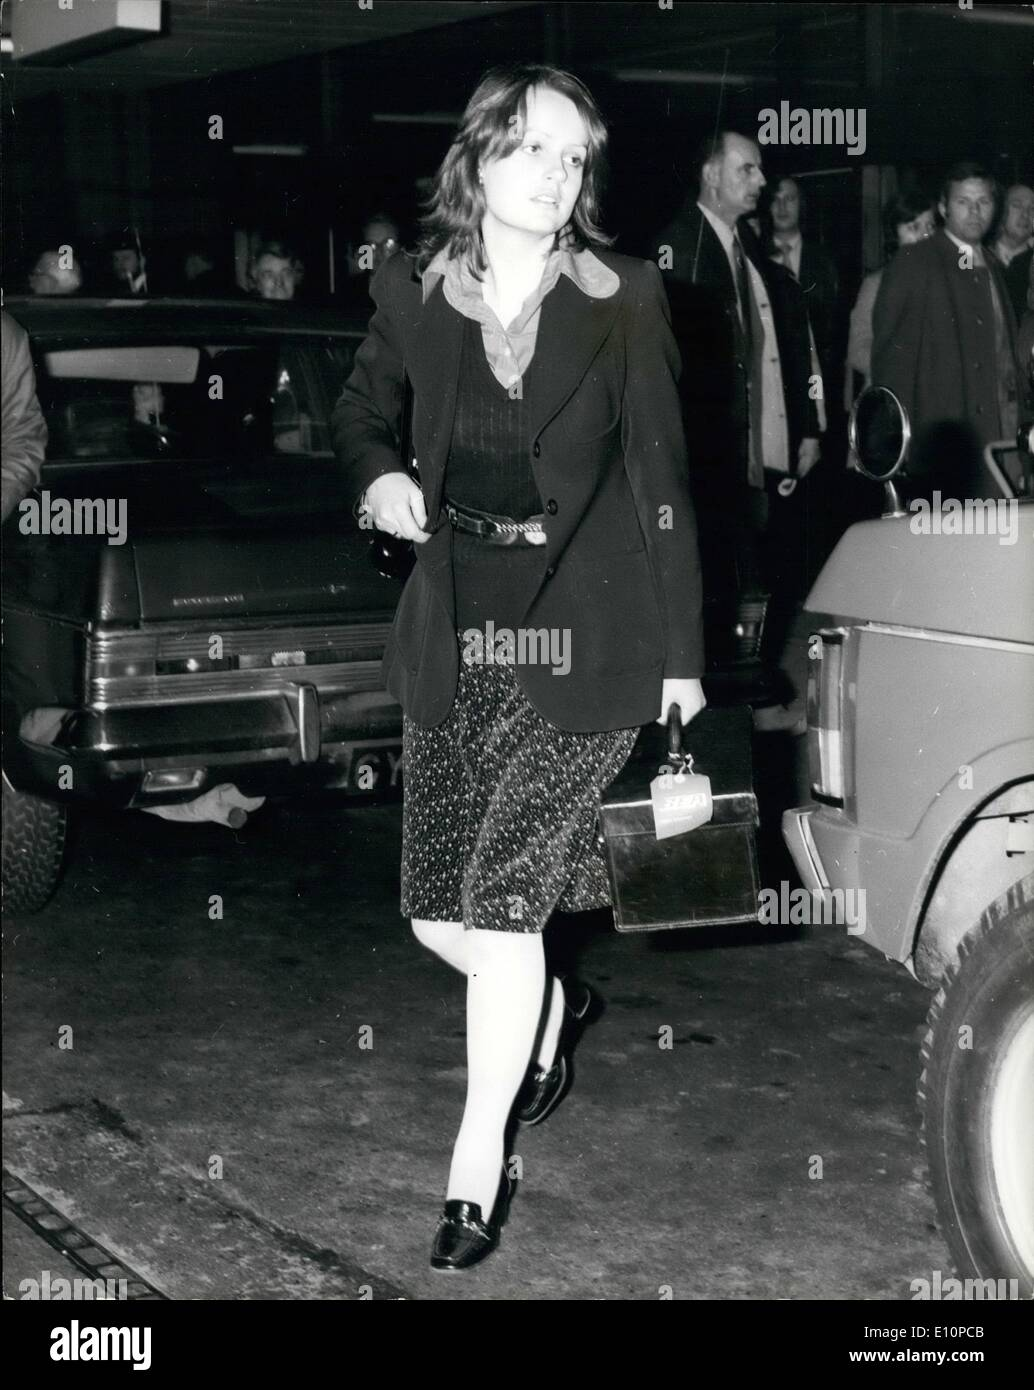 Nov. 11, 1973 - PRINCE CHARLES AND LADY JANE WELLESLEY ARRIVE BACK FROM SPAIN. PRINCE CHARLES and LADY JANE WELLESLEY arrived back from Spain yesterday on the same scheduled flight. Lady Jane, 22 year old daughter of the Duke of Wellington, denied rumors of a romance. The Prince stayed on the Duke of Wellington's estate near Granada, and was often in the company of Lady Jane on shooting excursions. PHOTO SHOWS:- PRINCE CHARLES leaving Heathrow Airport after arriving from Spain yesterday. - Stock Image